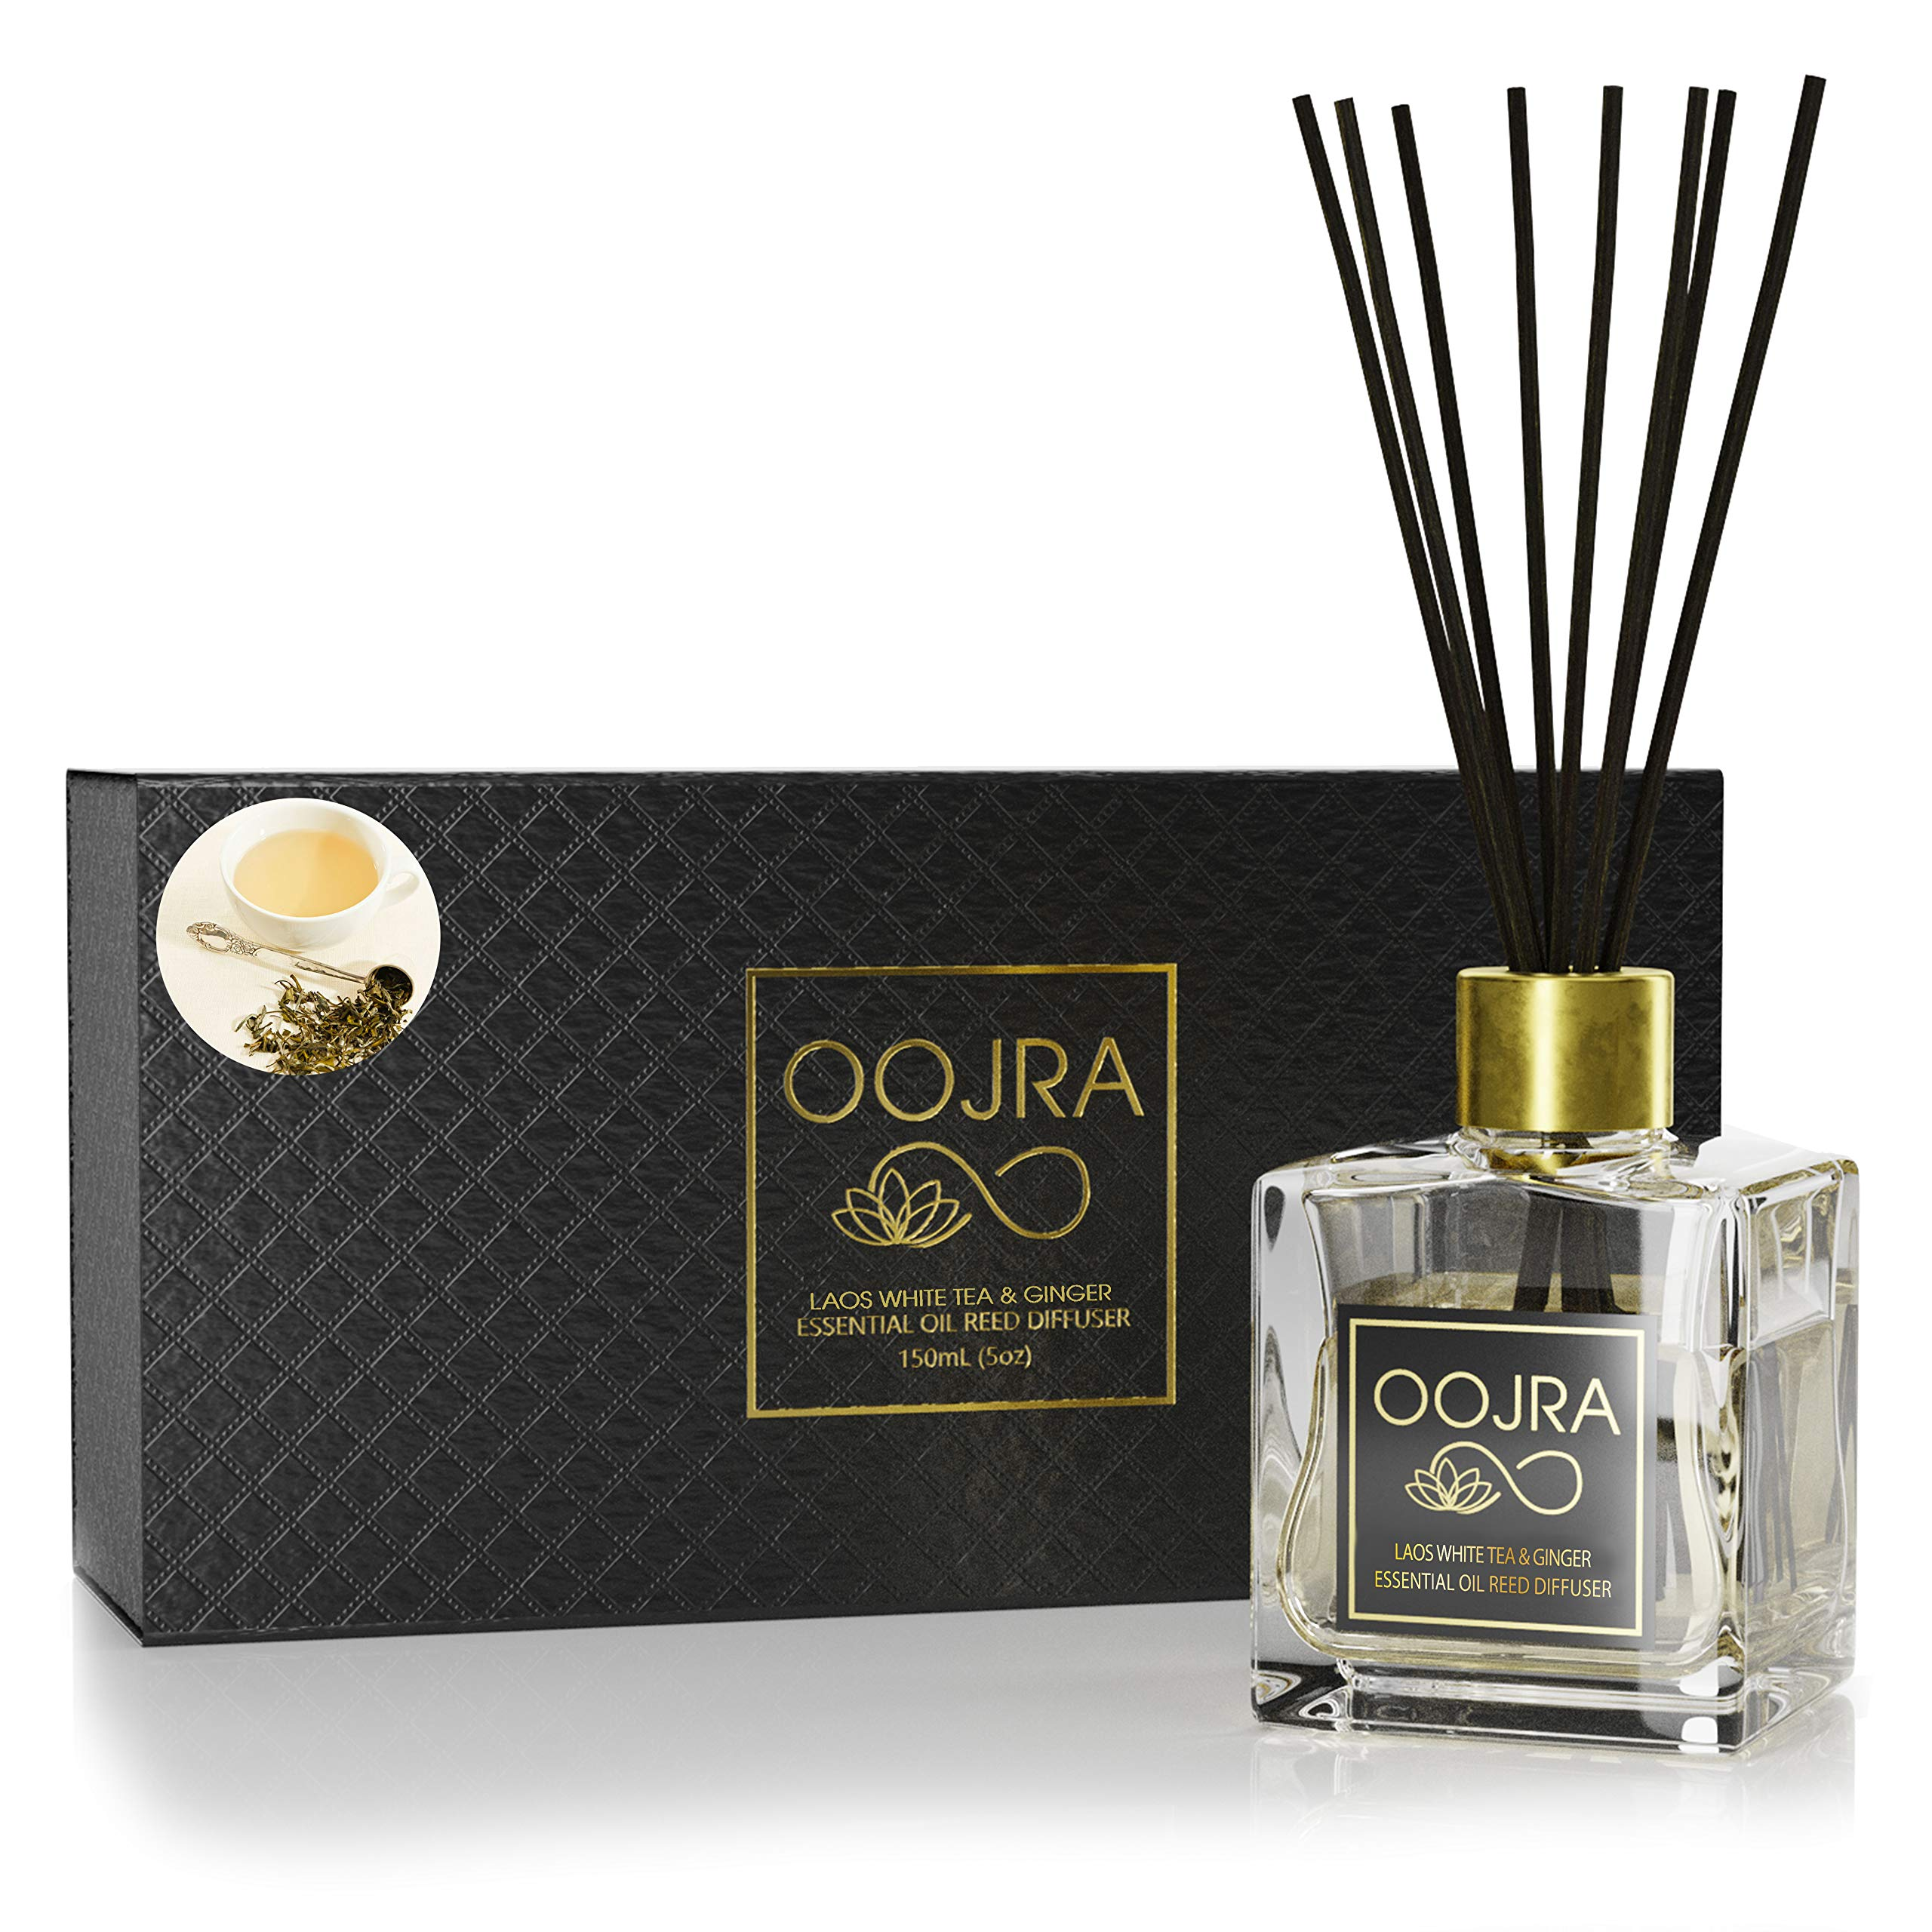 OOJRA Laos White Tea and Ginger Essential Oil Reed Diffuser Gift Set, Glass Bottle, Reed Sticks, Natural Scented Long Lasting Fragrance Oil (3+ Months 4 oz) for Aromatherapy and Air Freshener